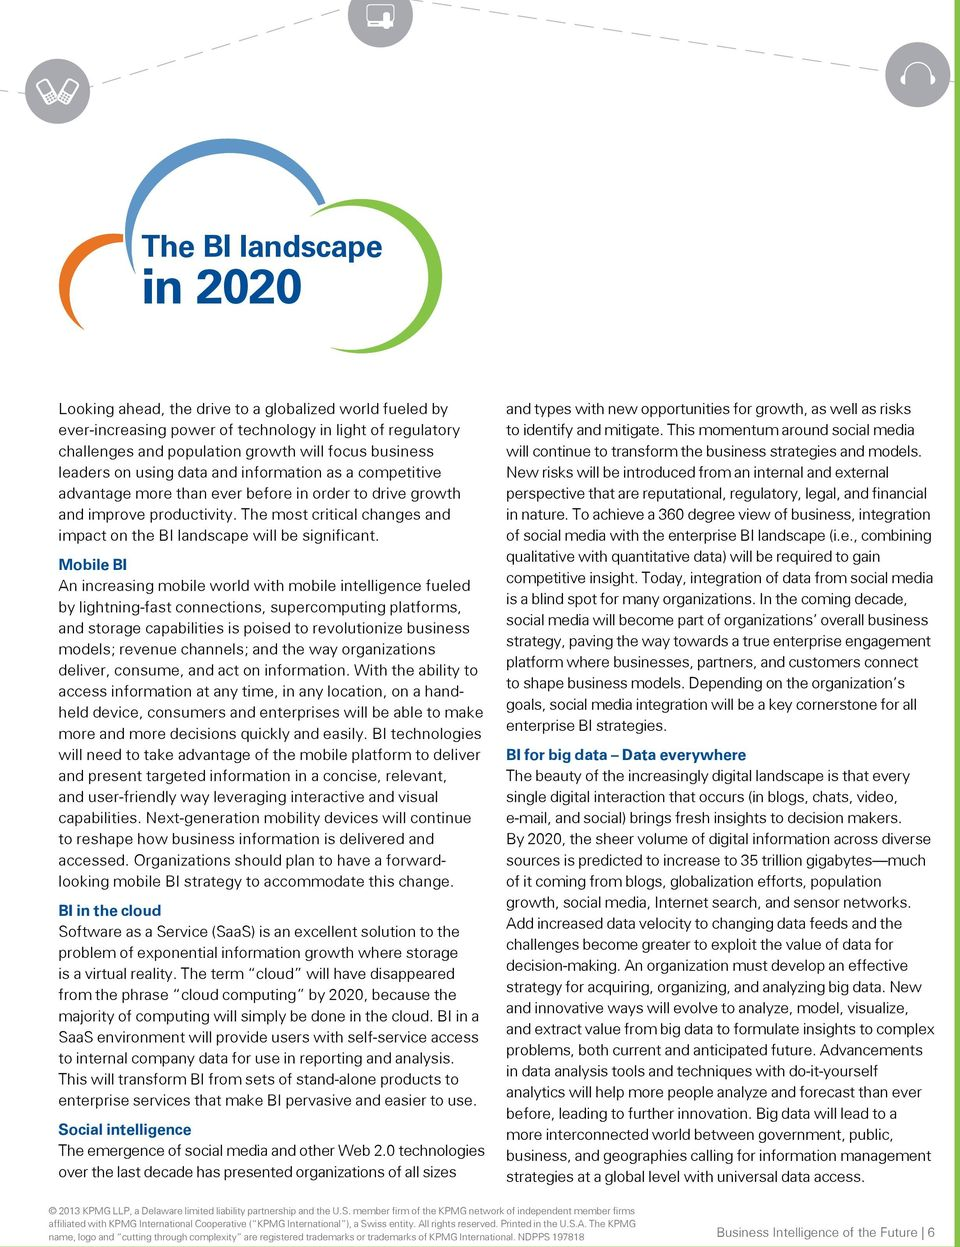 The most critical changes and impact on the BI landscape will be significant.